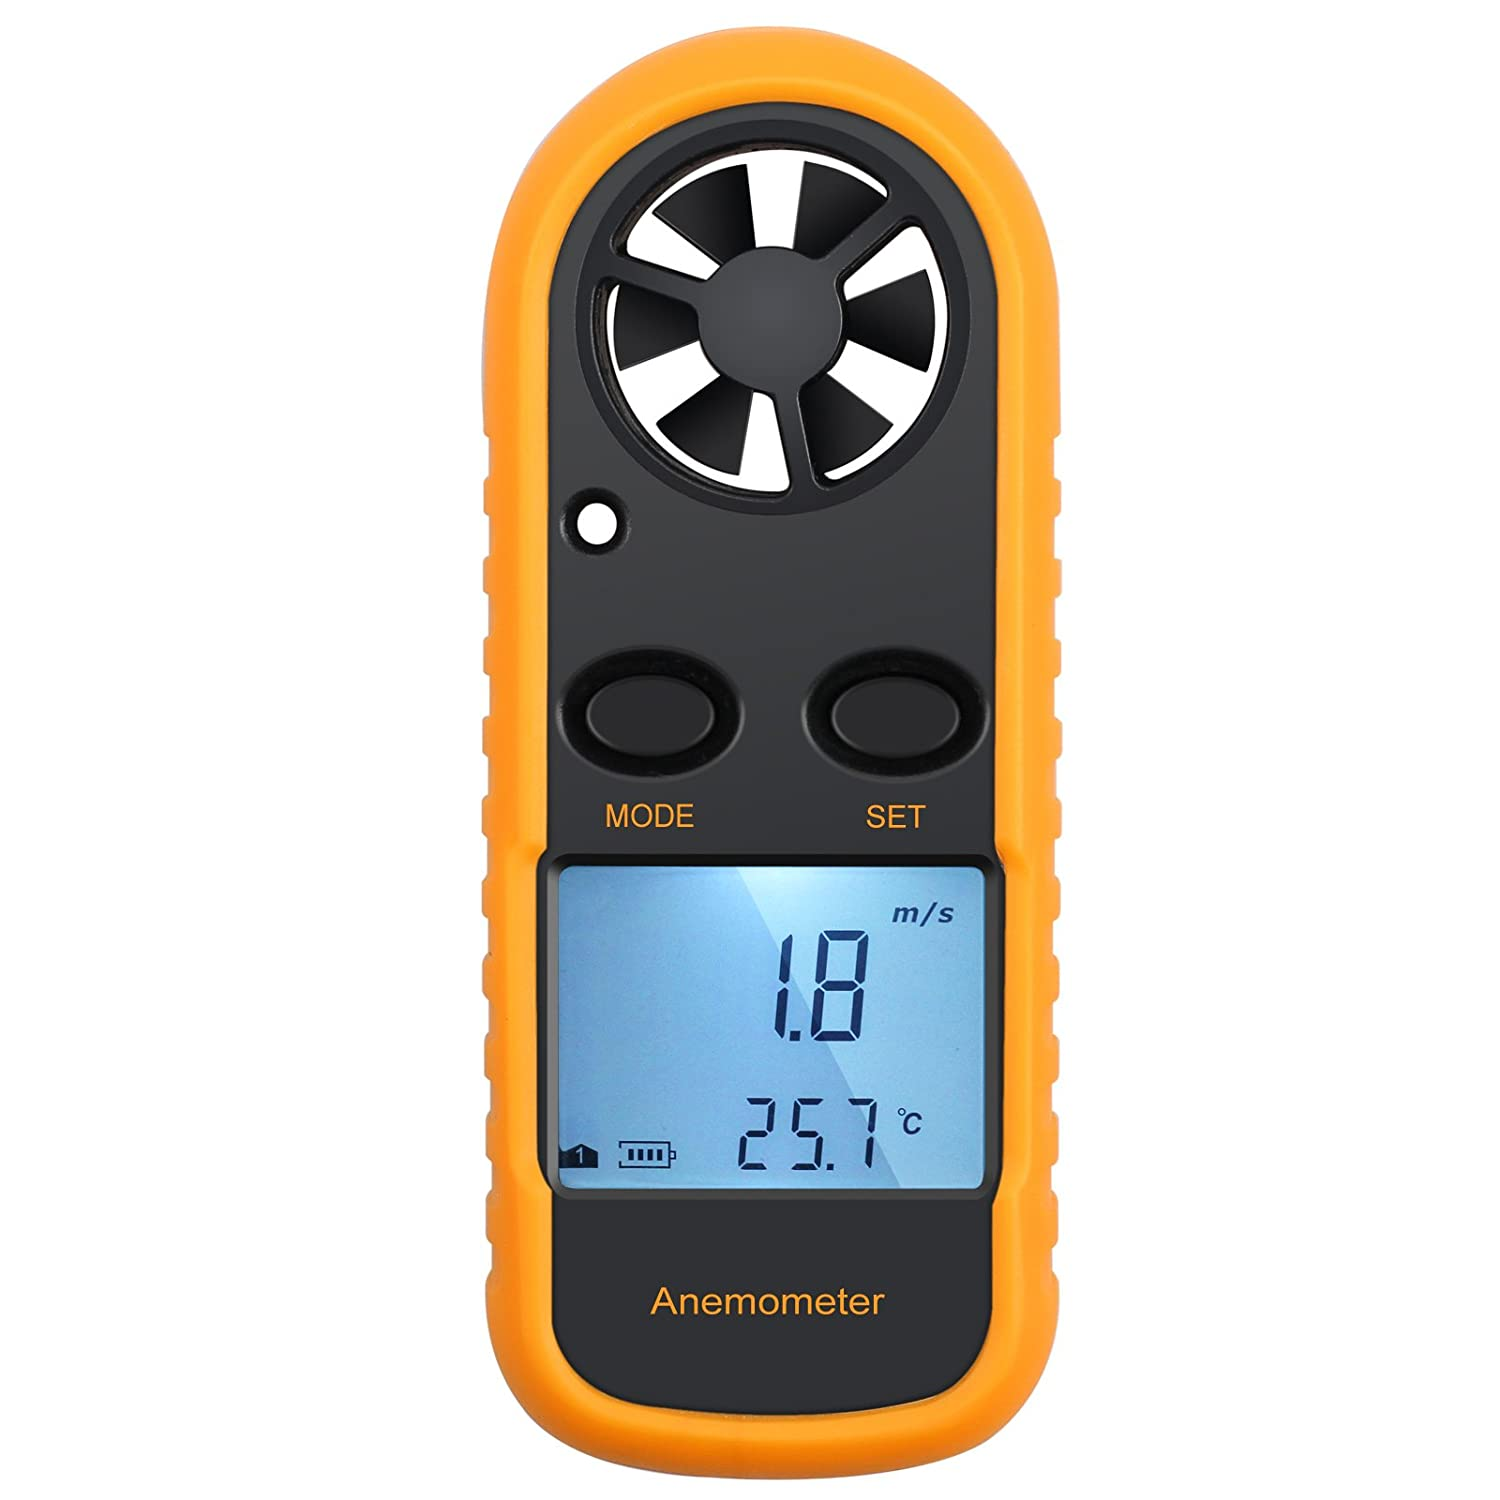 LiNKFOR Digital Handheld Anemometer Wind Speed Meter thermomoter Sailing Surfing CE Approved